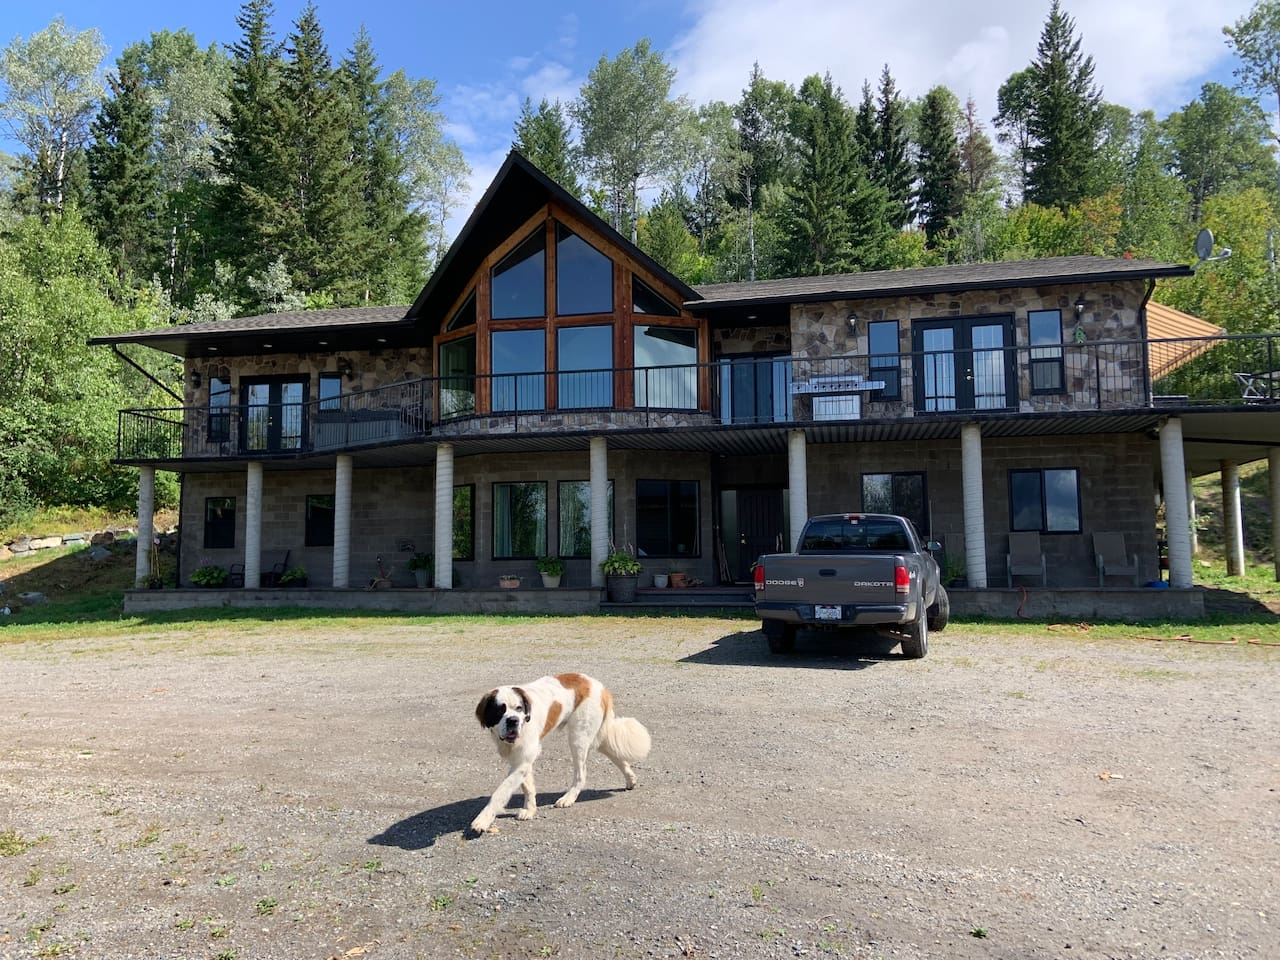 We are pet friendly, relaxed property, trailer parking as well.